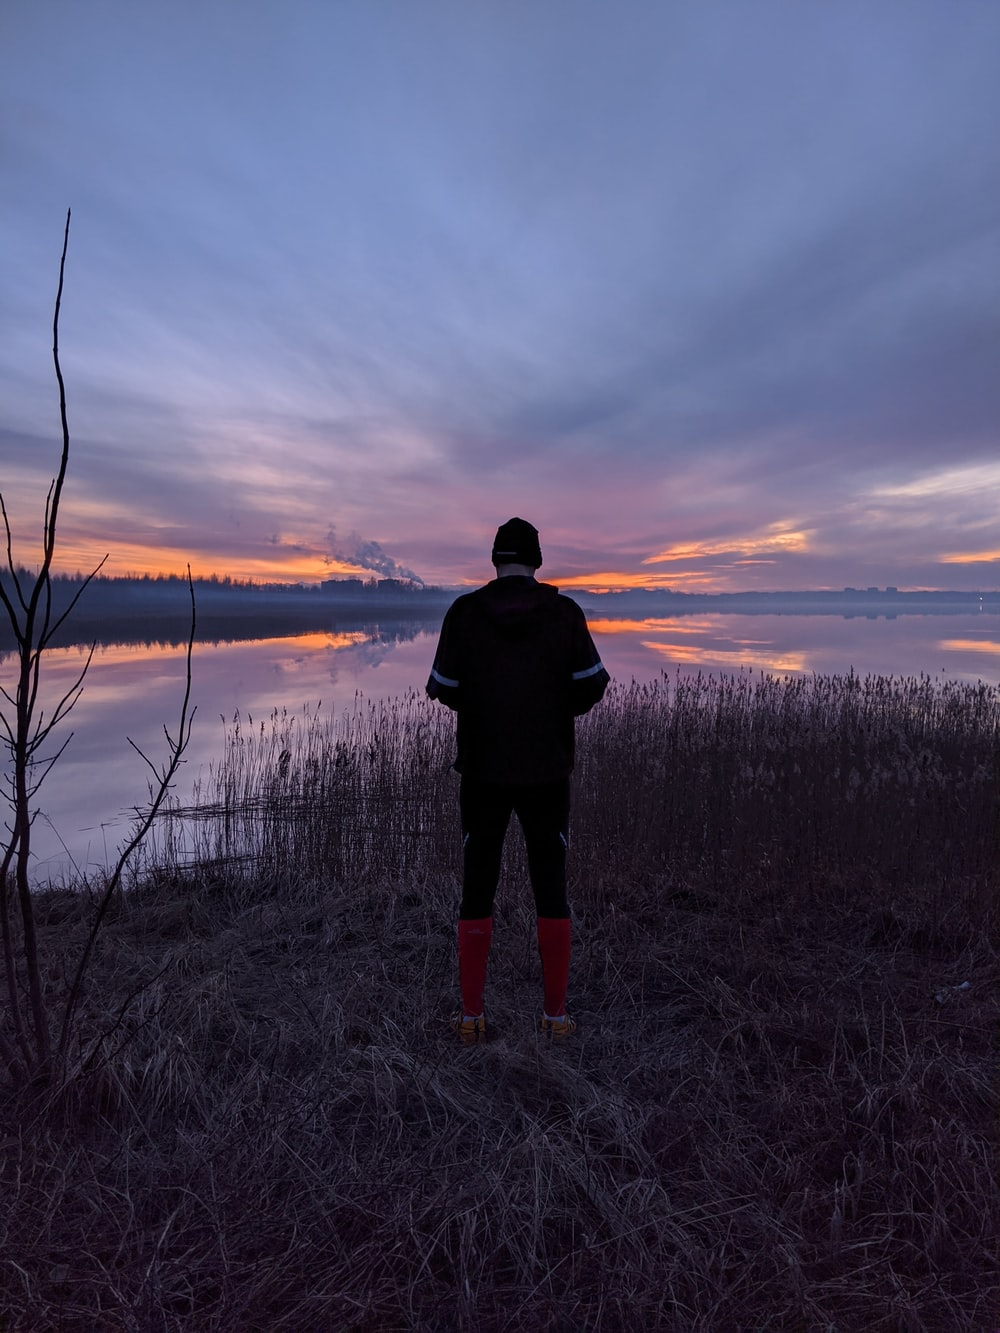 man in black jacket standing on grass field near lake during sunset